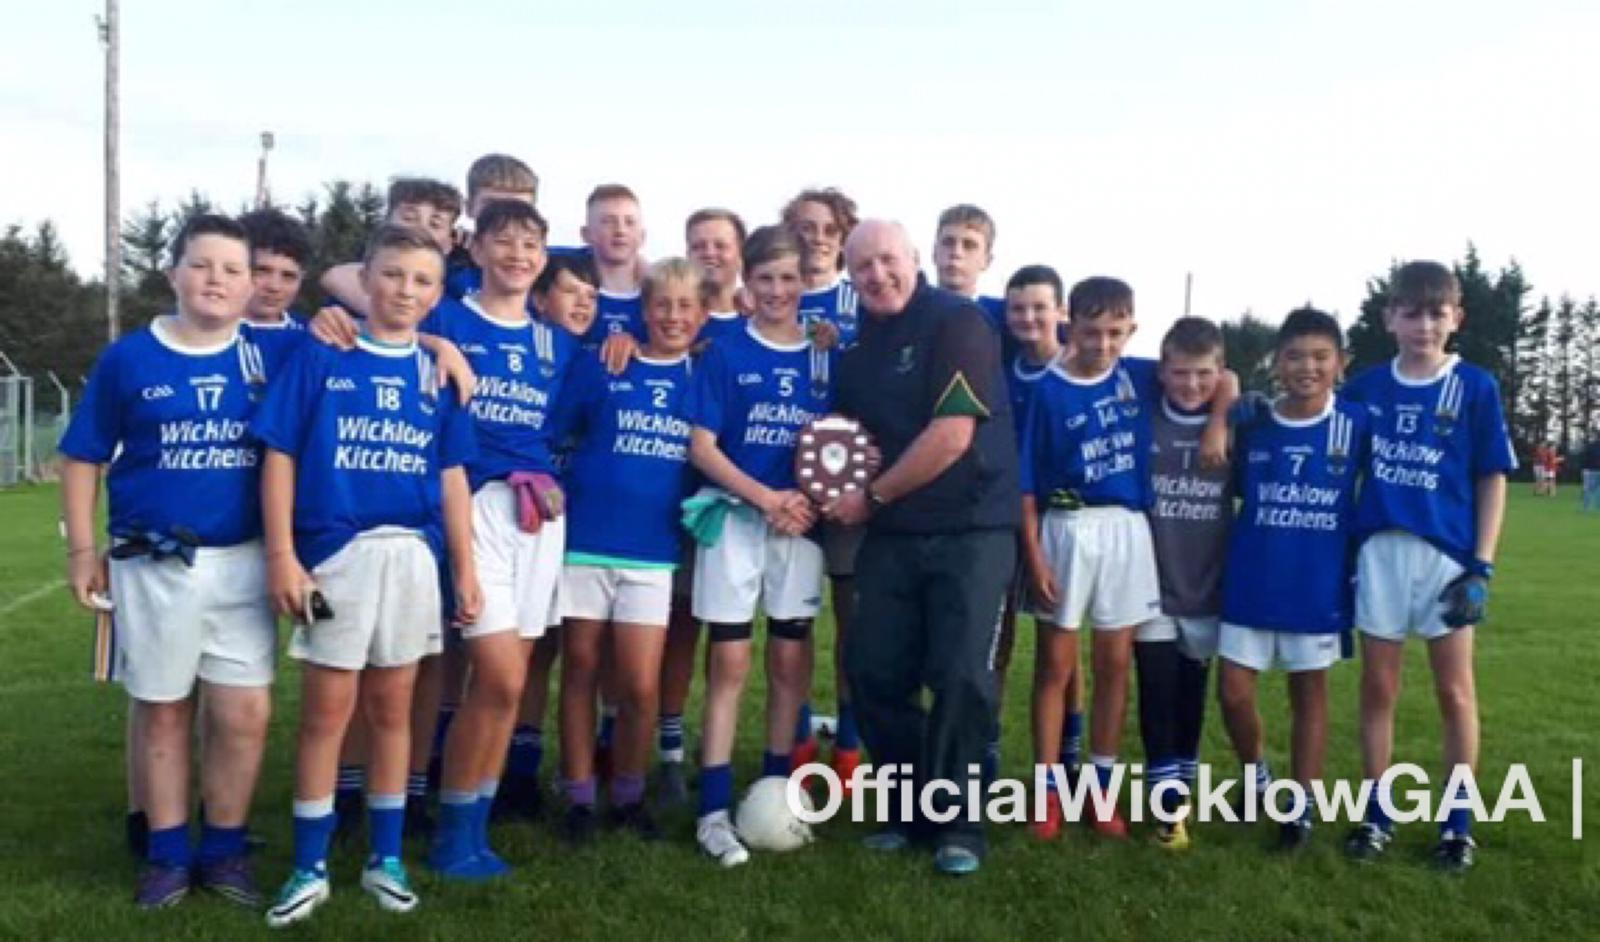 St Patrick's GAA Club Wicklow Town crowned U13 Football Division 1 League Winners 2019